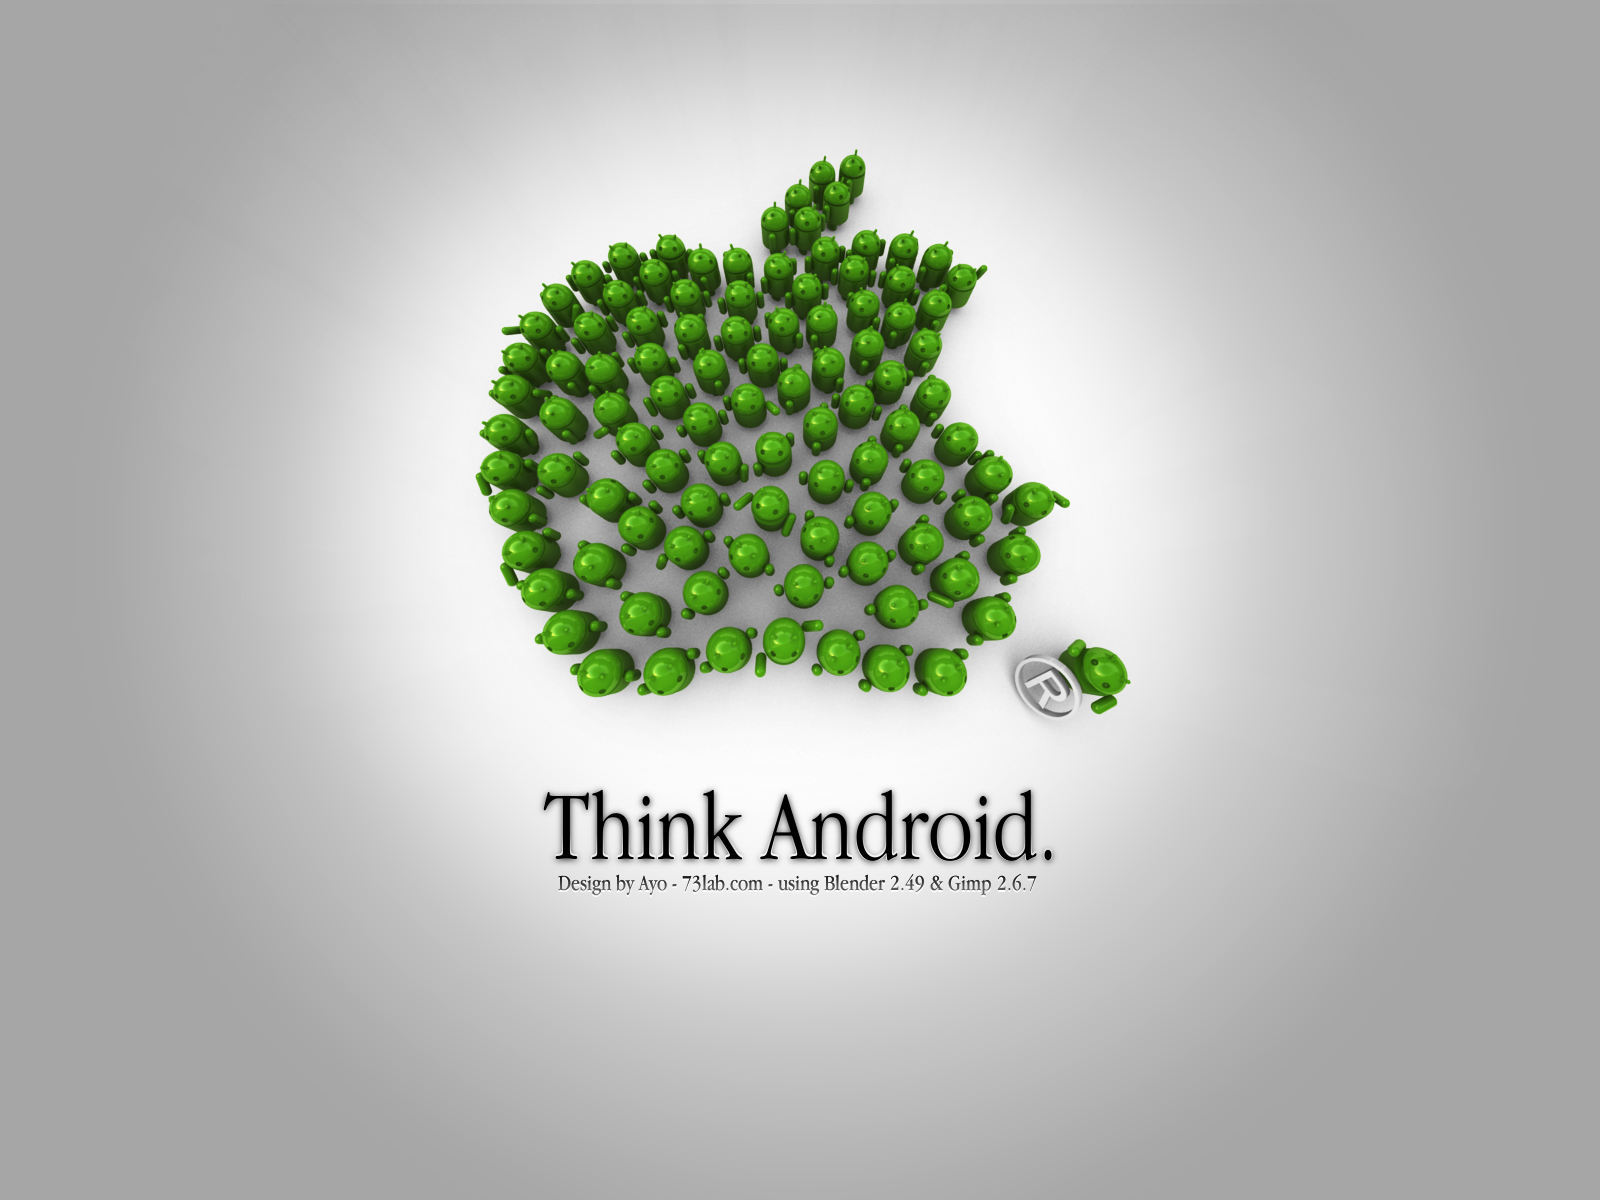 high definition green android wallpaper for pc wallpaper pinterest android and wallpaper